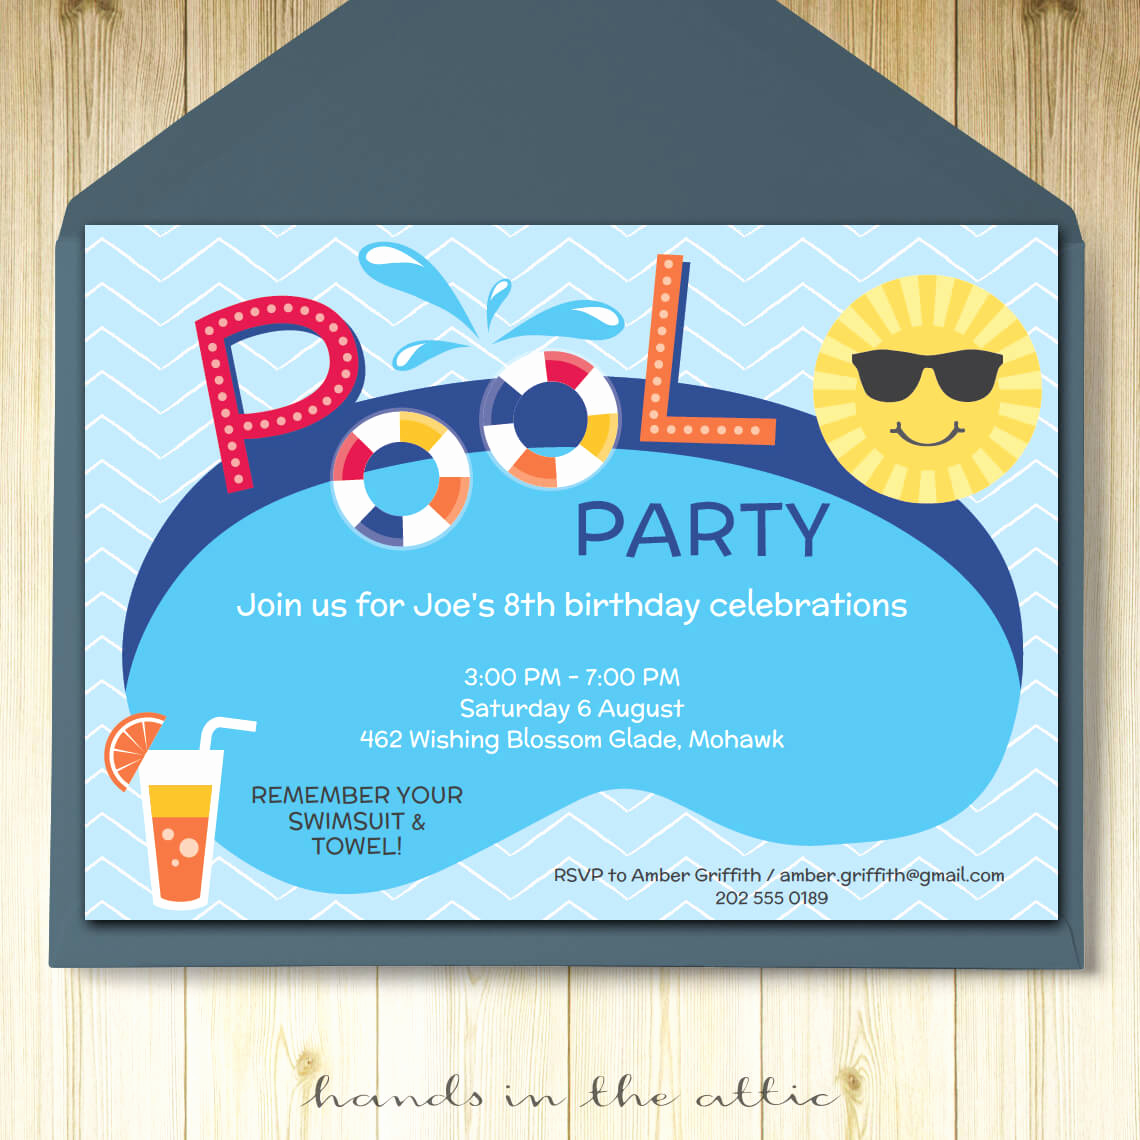 Pool Party Invites Templates Fresh Pool Party Invitation Printable Template